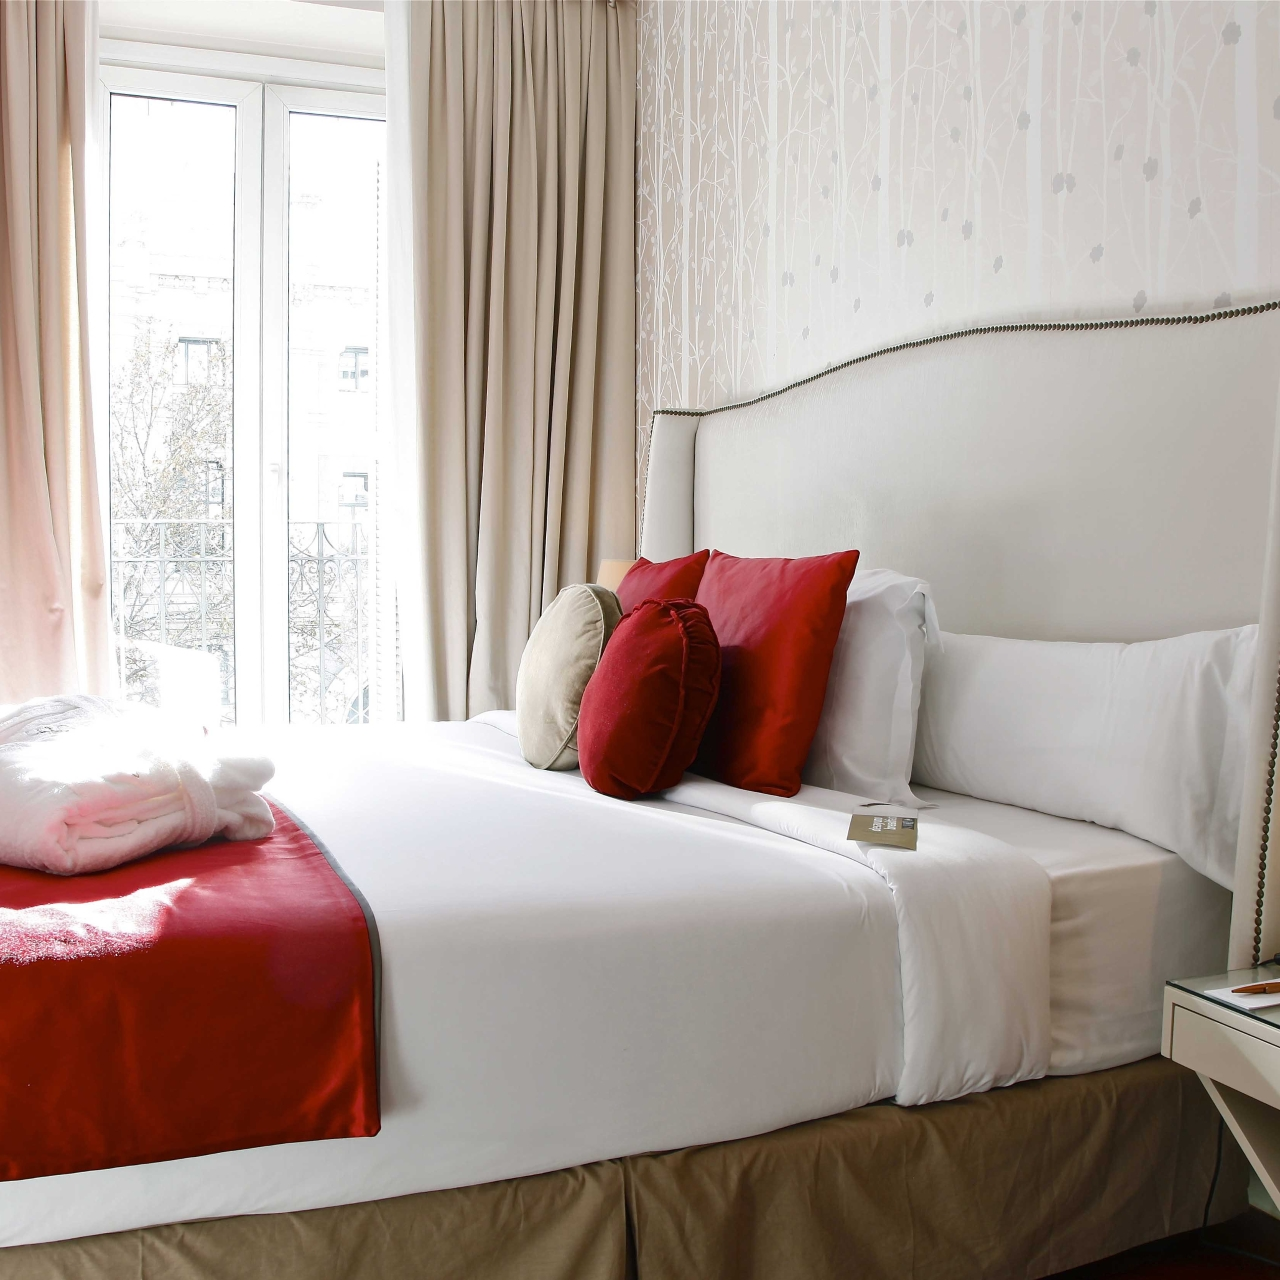 Hotel Luxury Suites Apartments 4 Hrs Star Hotel In Madrid Madrid